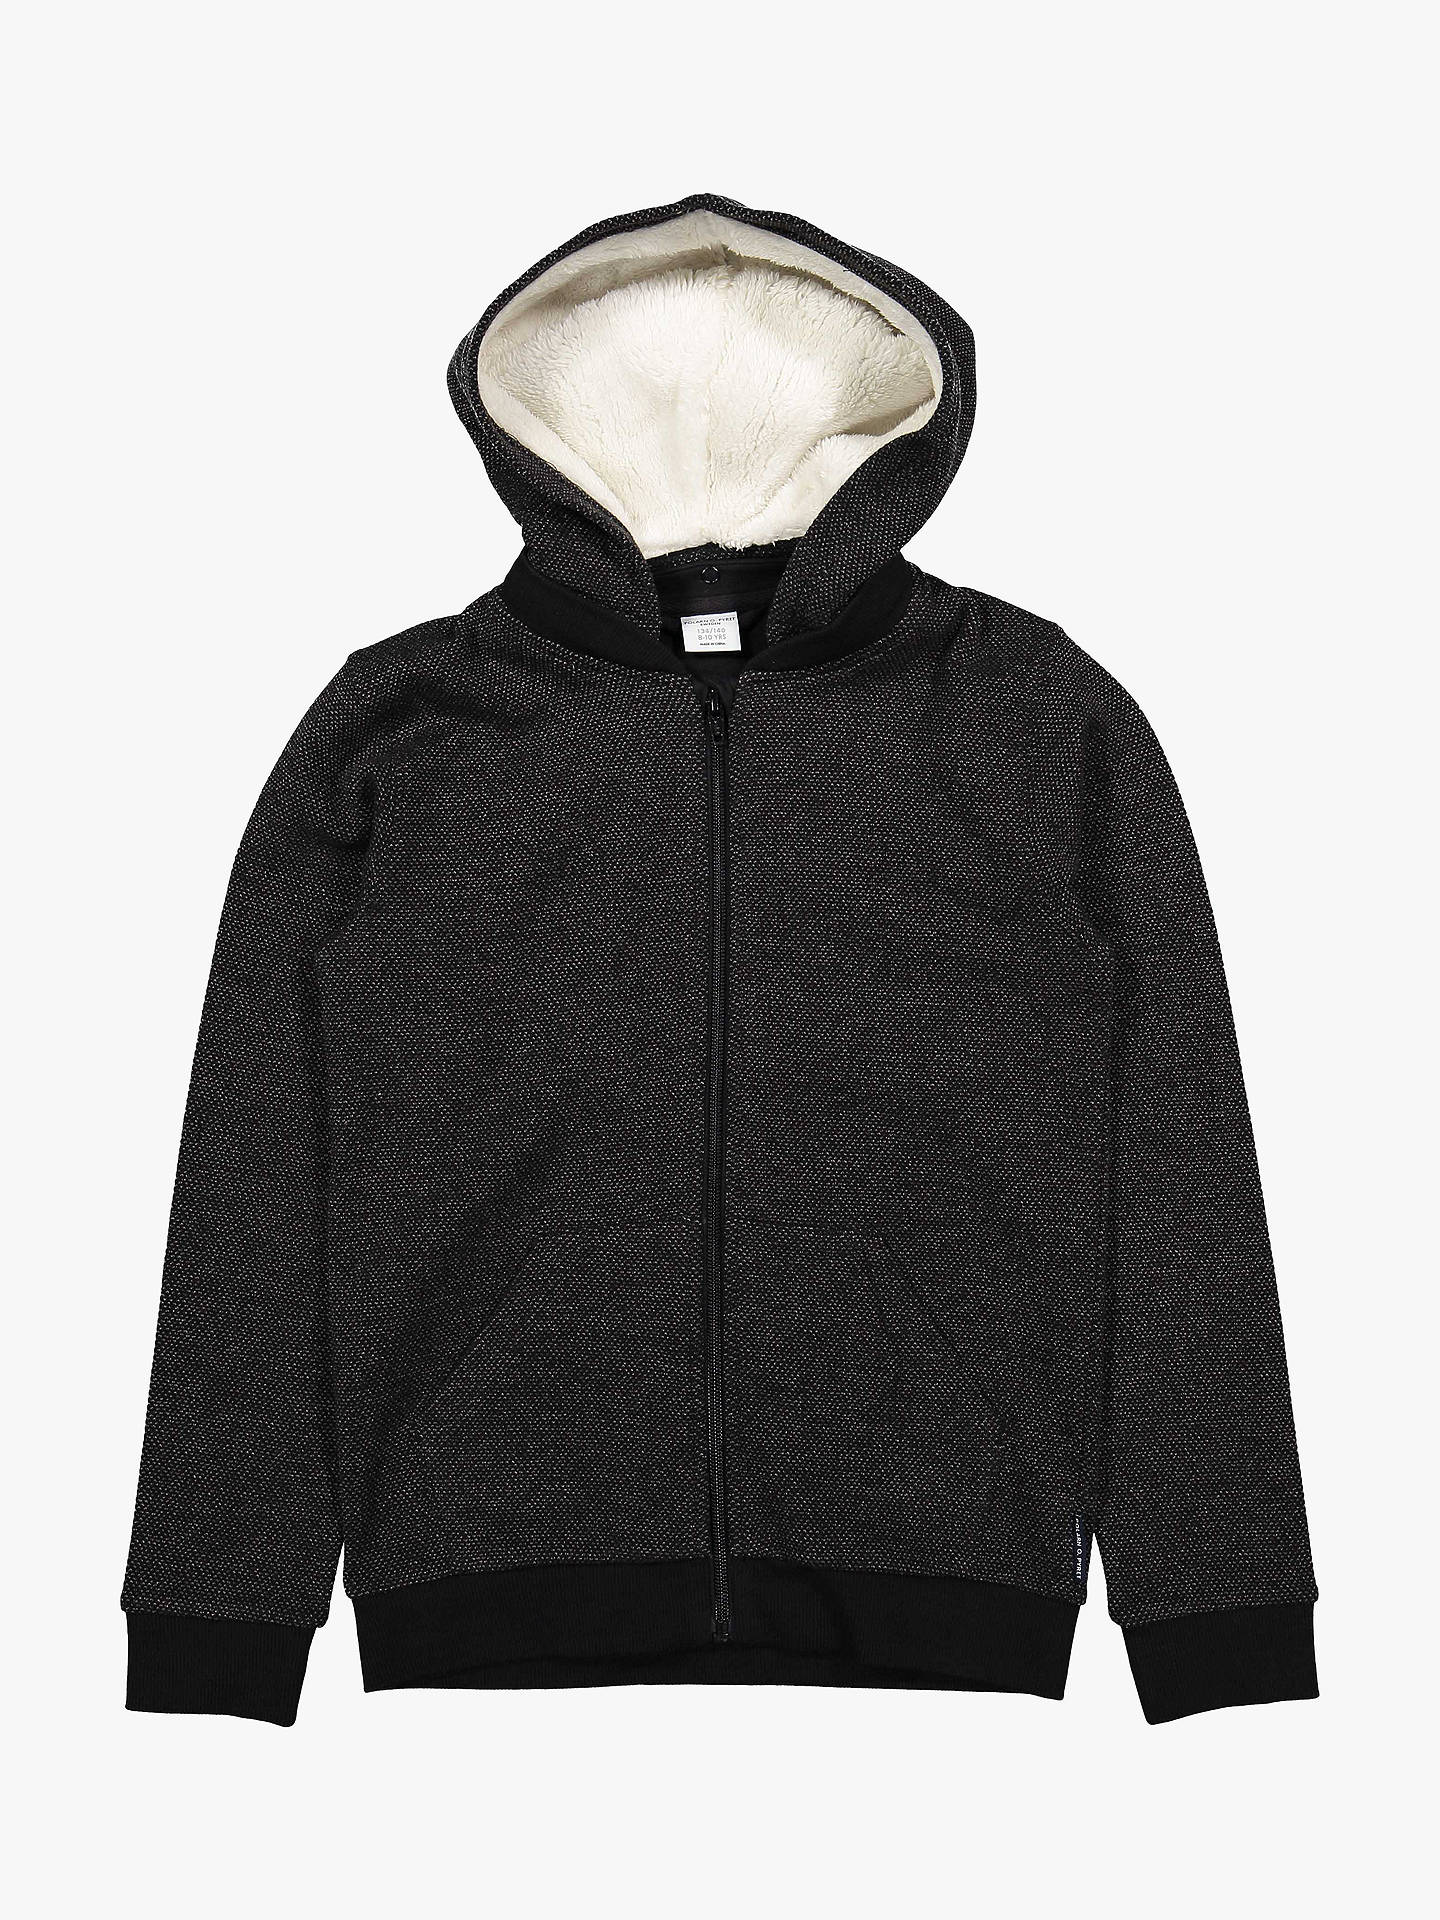 BuyPolarn O. Pyret Children's Fleece Lined Hoodie, Grey, 6-8 years Online at johnlewis.com